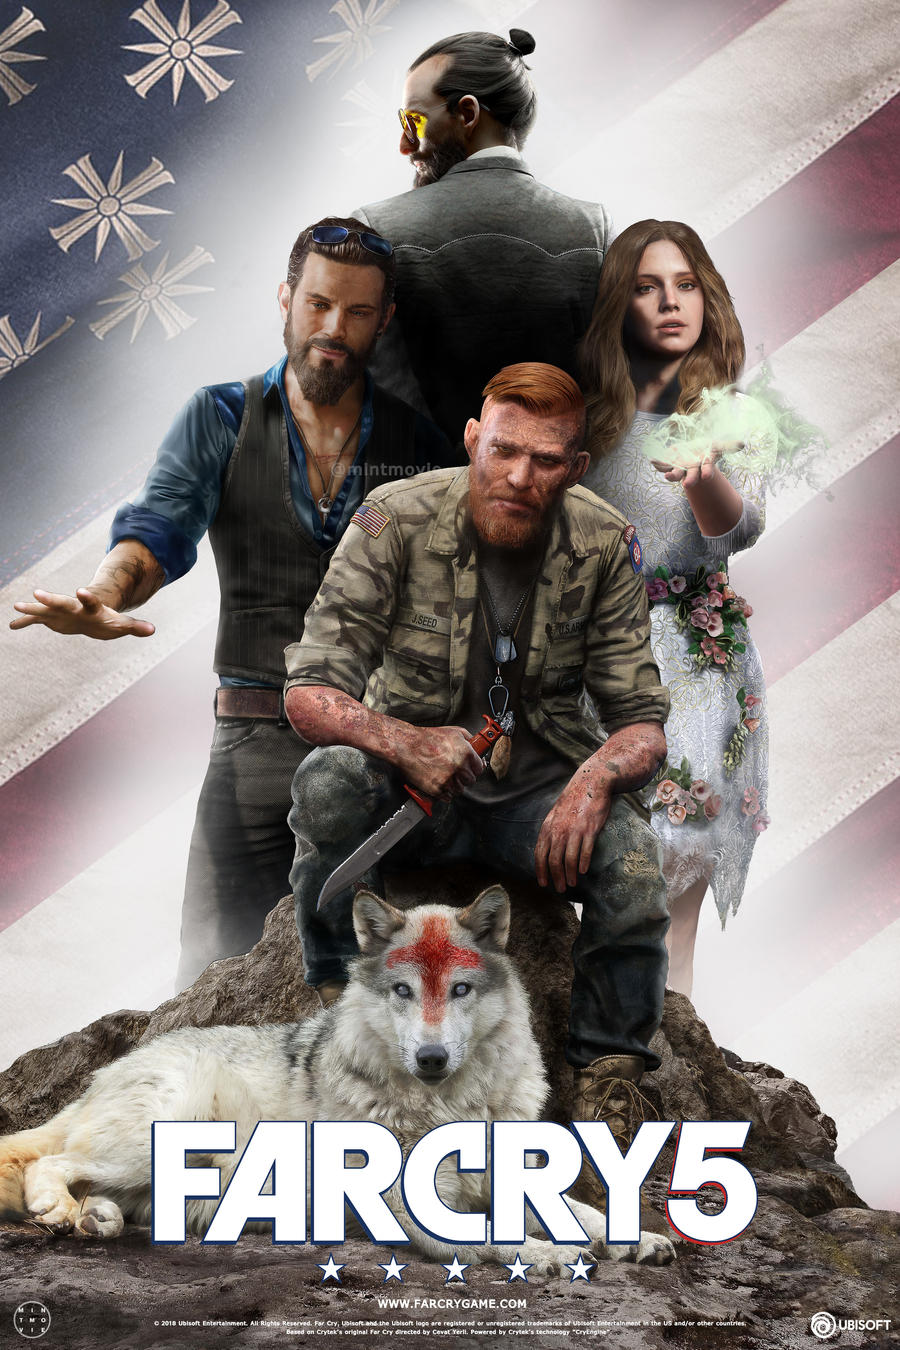 Far Cry 5 Poster Seed Family By Mintmovi3 On Deviantart